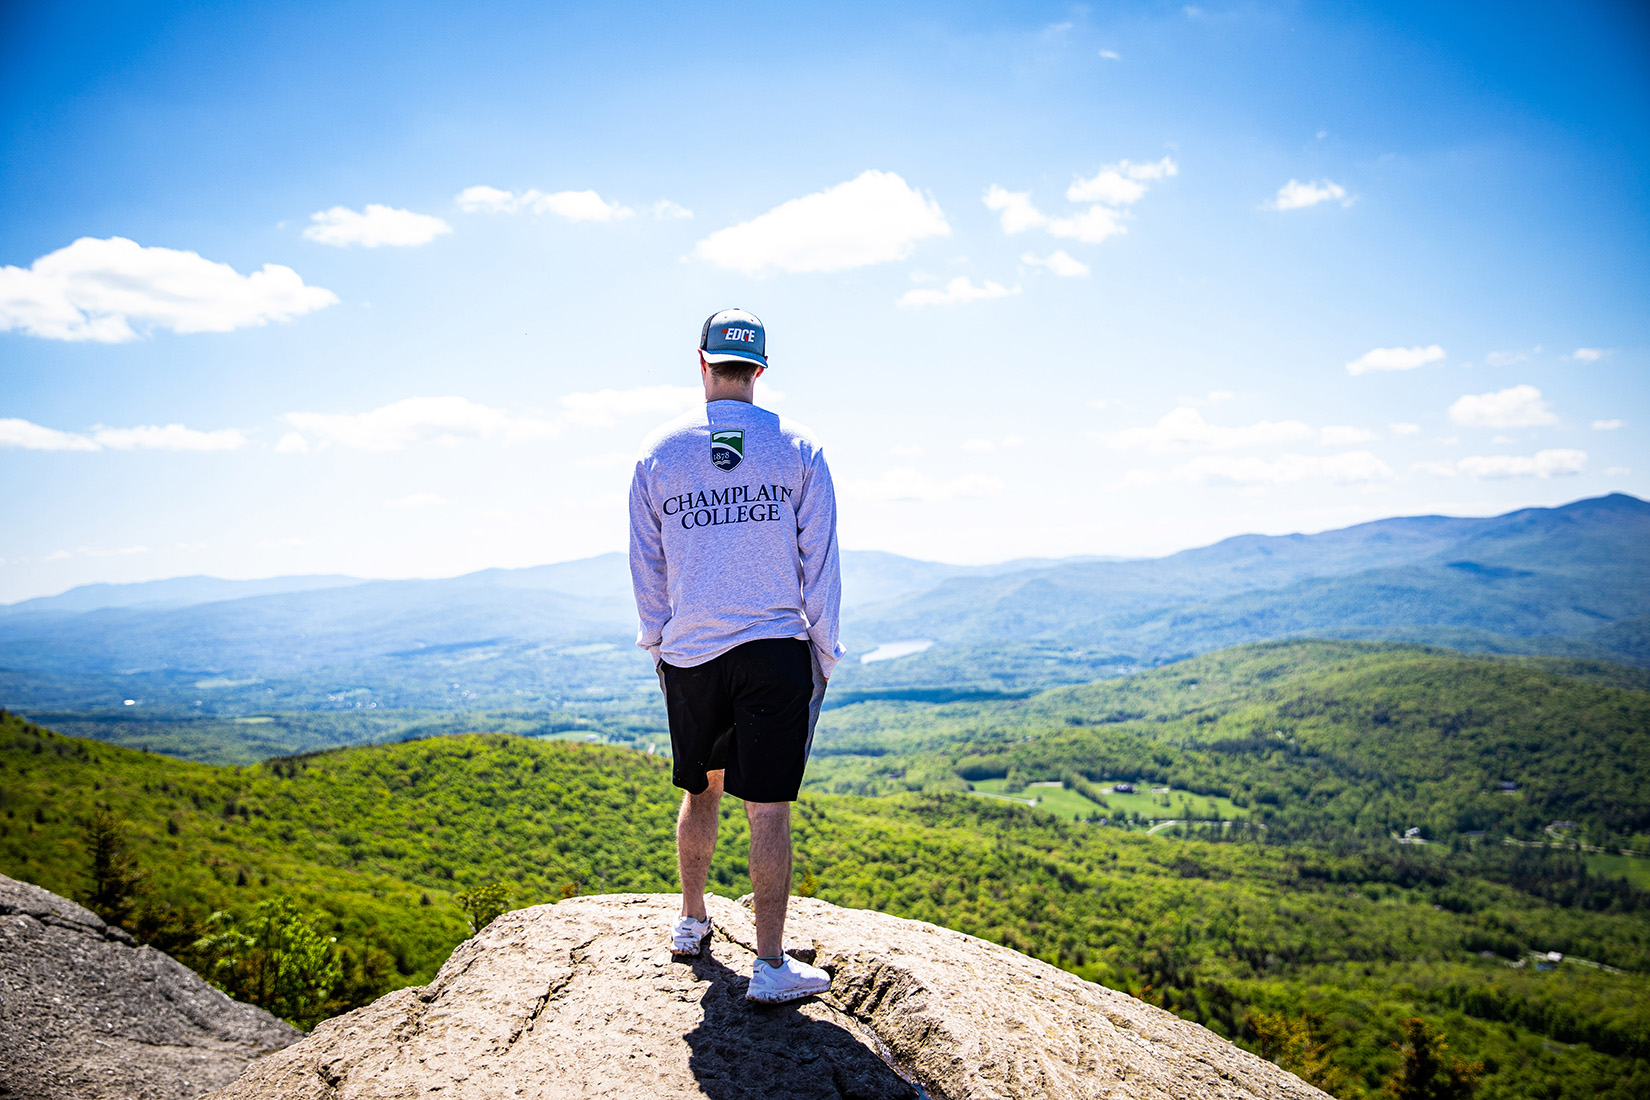 Champlain College student in Champlain College shirt overlooking Pinnacle Ridge in Stowe, Vermont